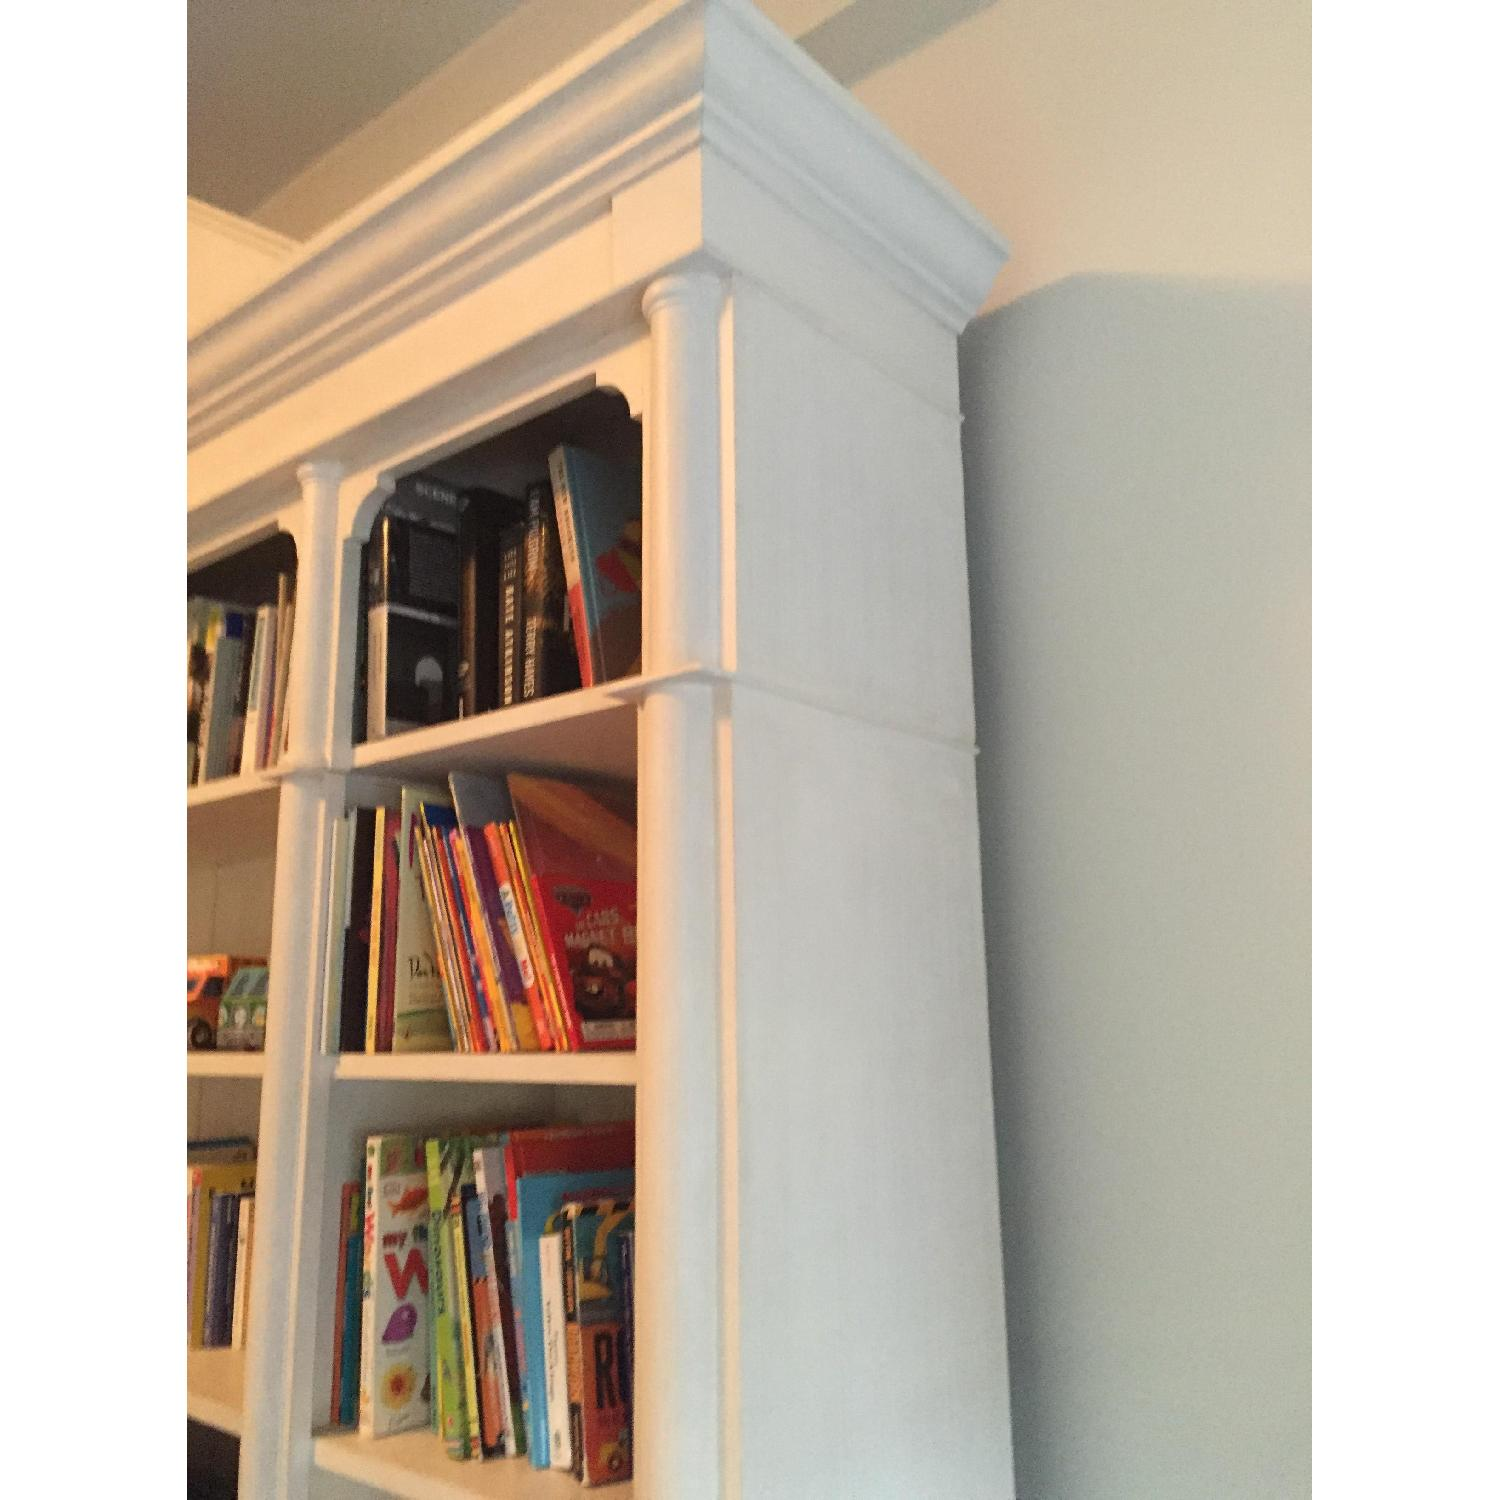 ABC Carpet & Home Toad Hill Collection Bookcase w/ TV Shelf - image-2